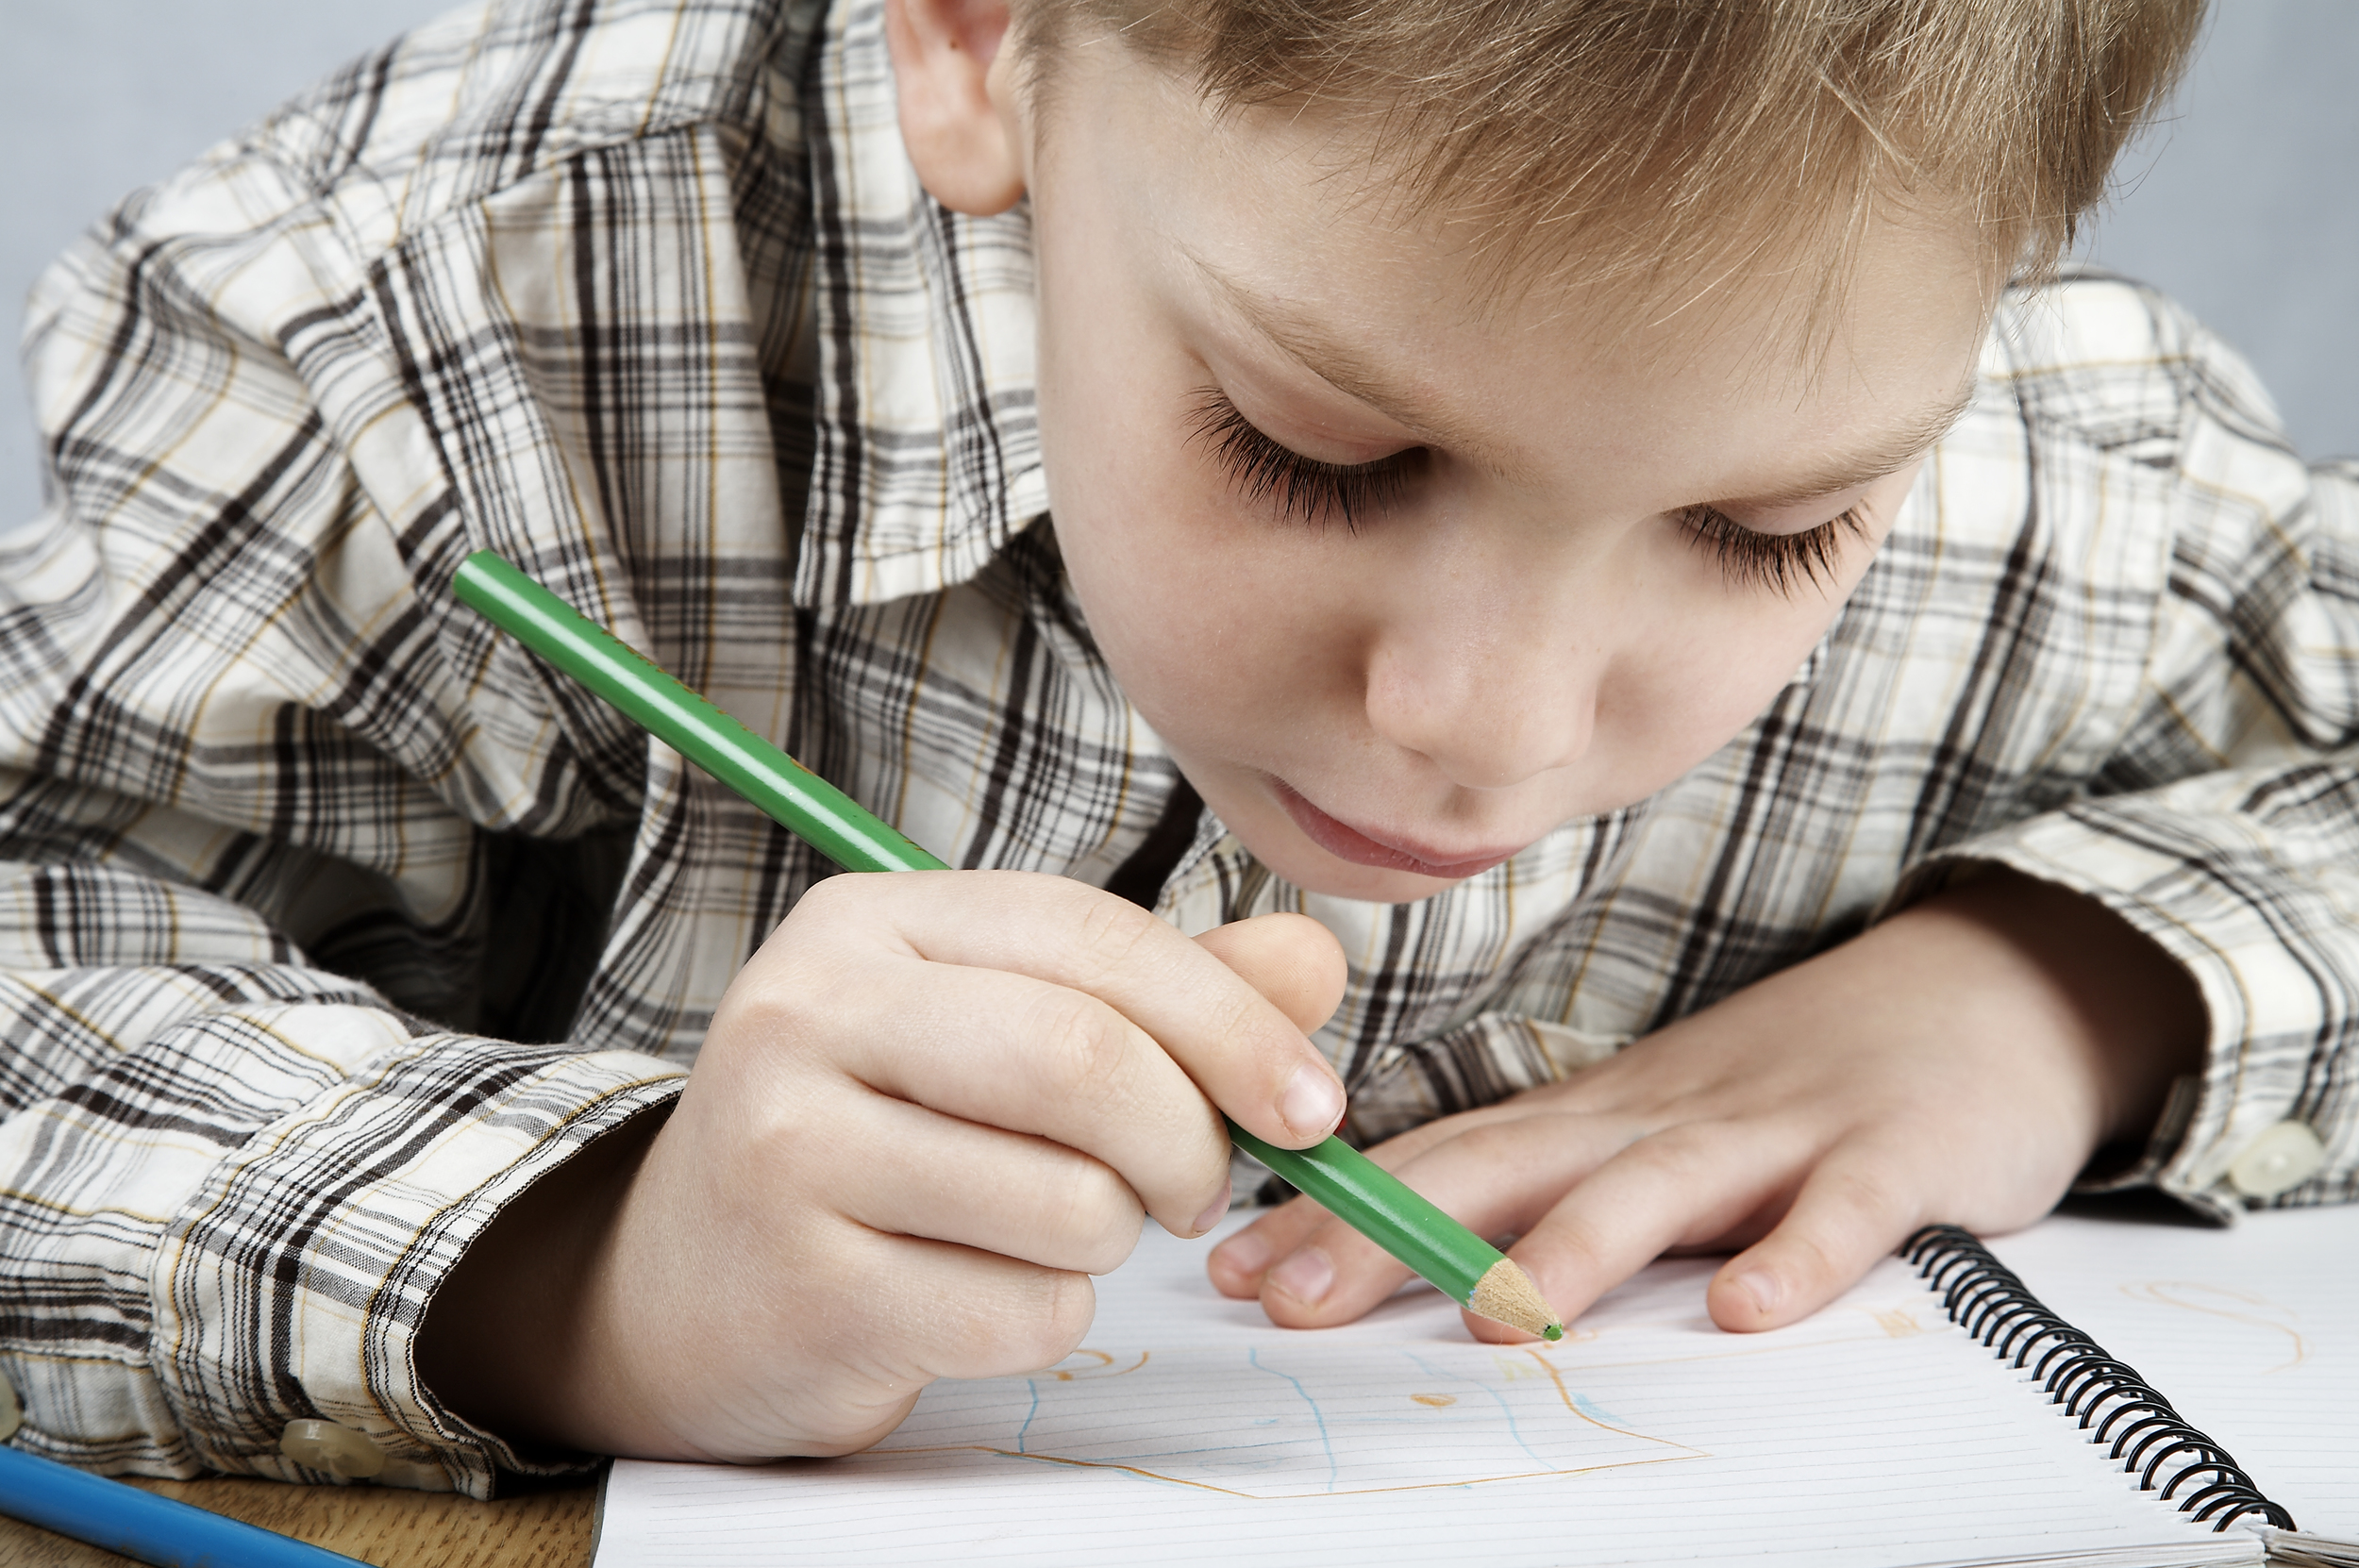 young boy writing with a pencil